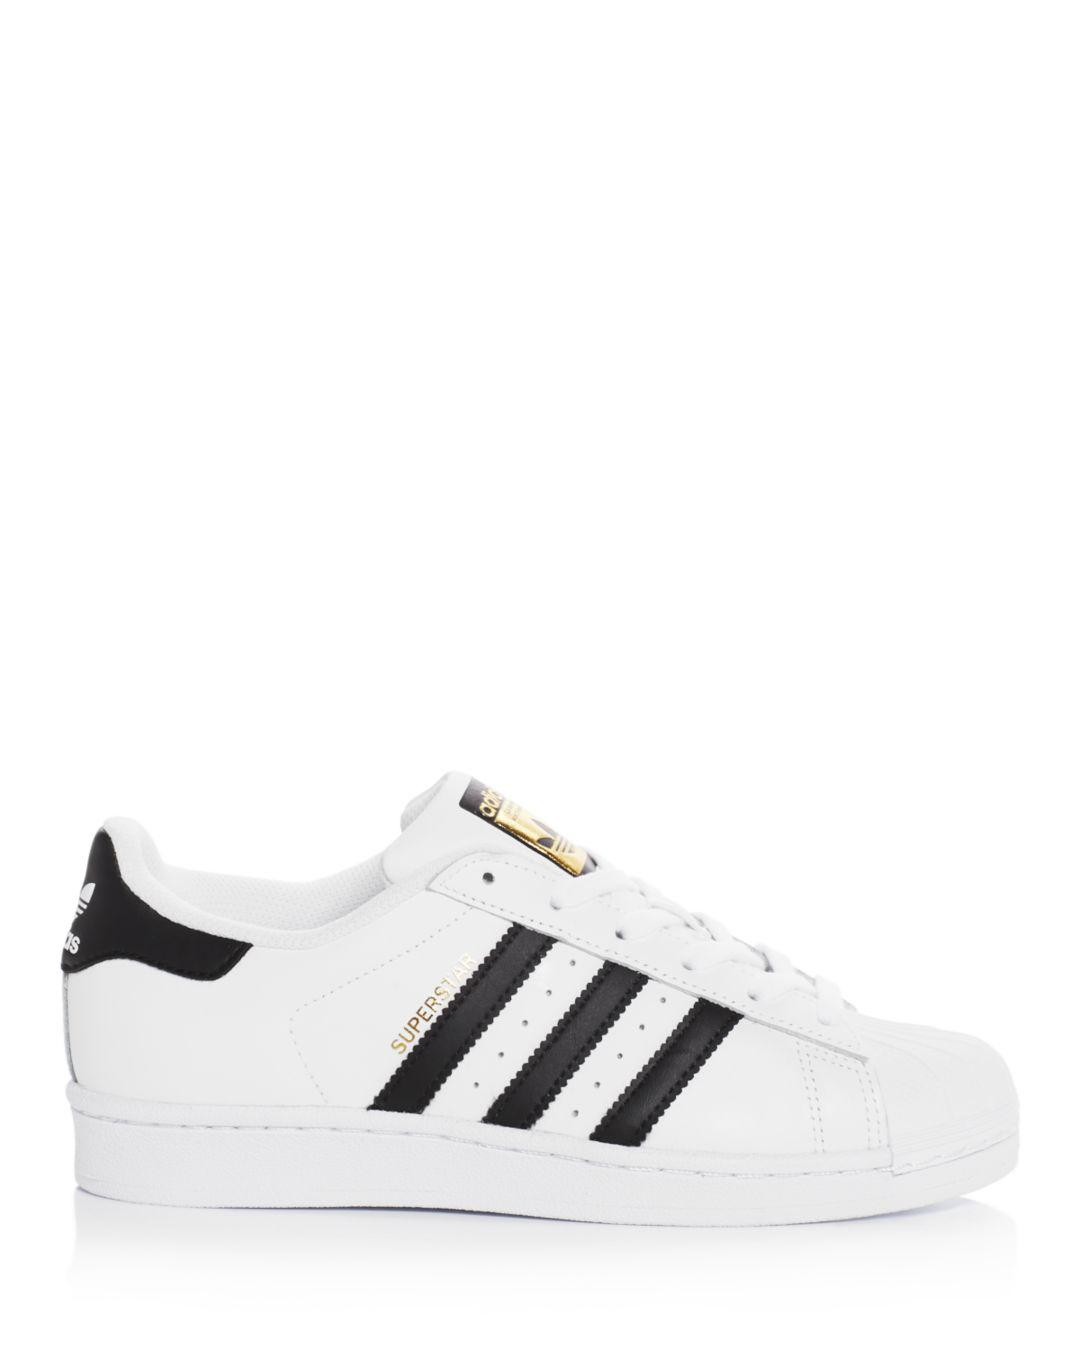 4f8ea230eb50 adidas Women s Superstar Lace Up Sneakers in White - Lyst